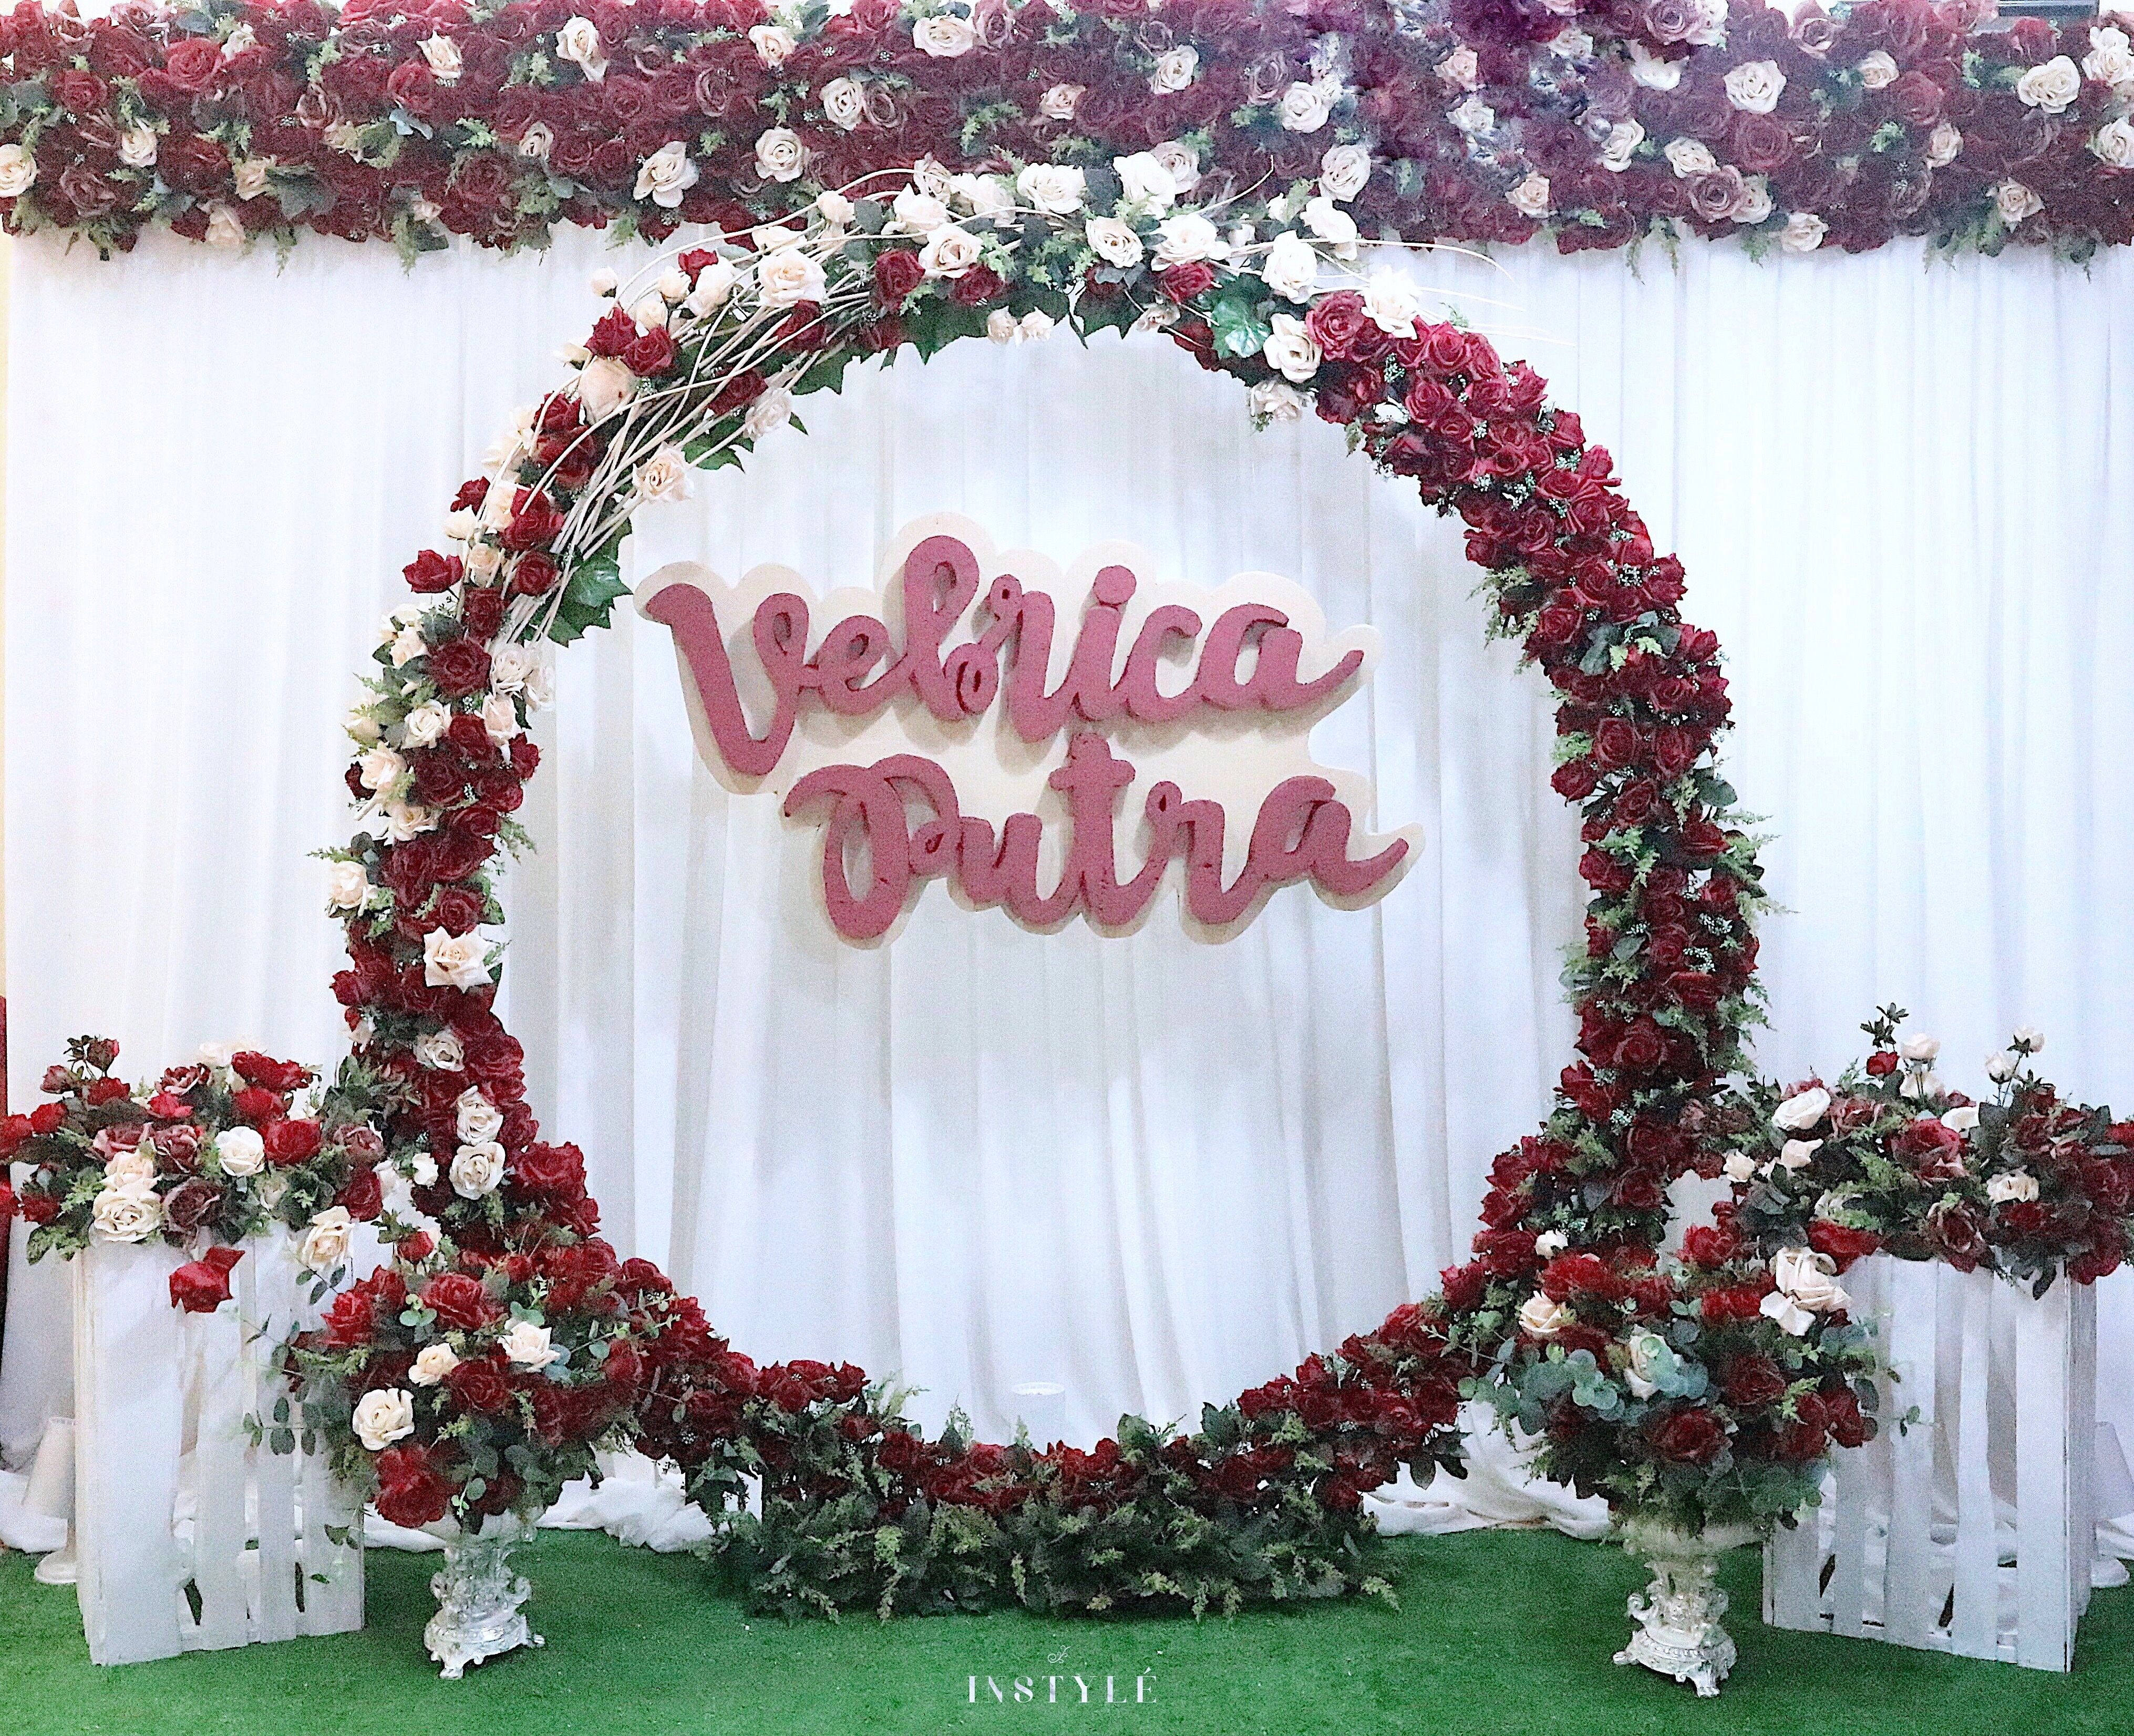 Floral Wreath Backdrop For The Engagement Of Vebrica Putra